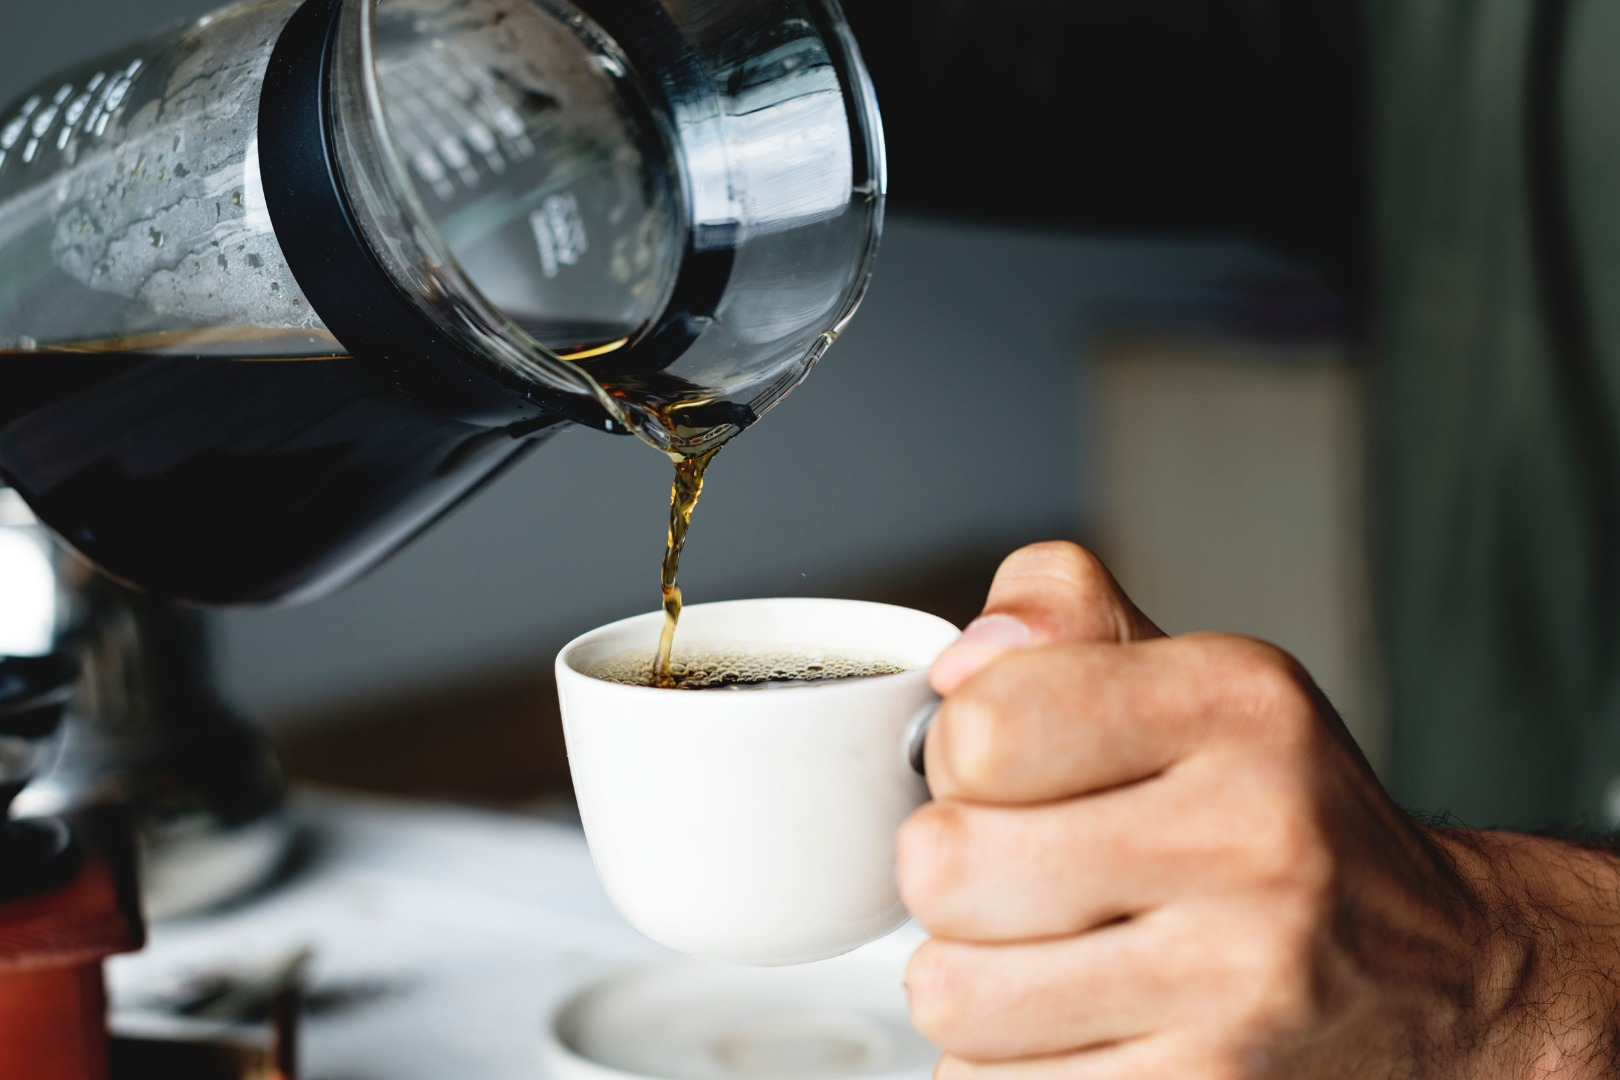 New study says daily coffee has no impact on cancer risk